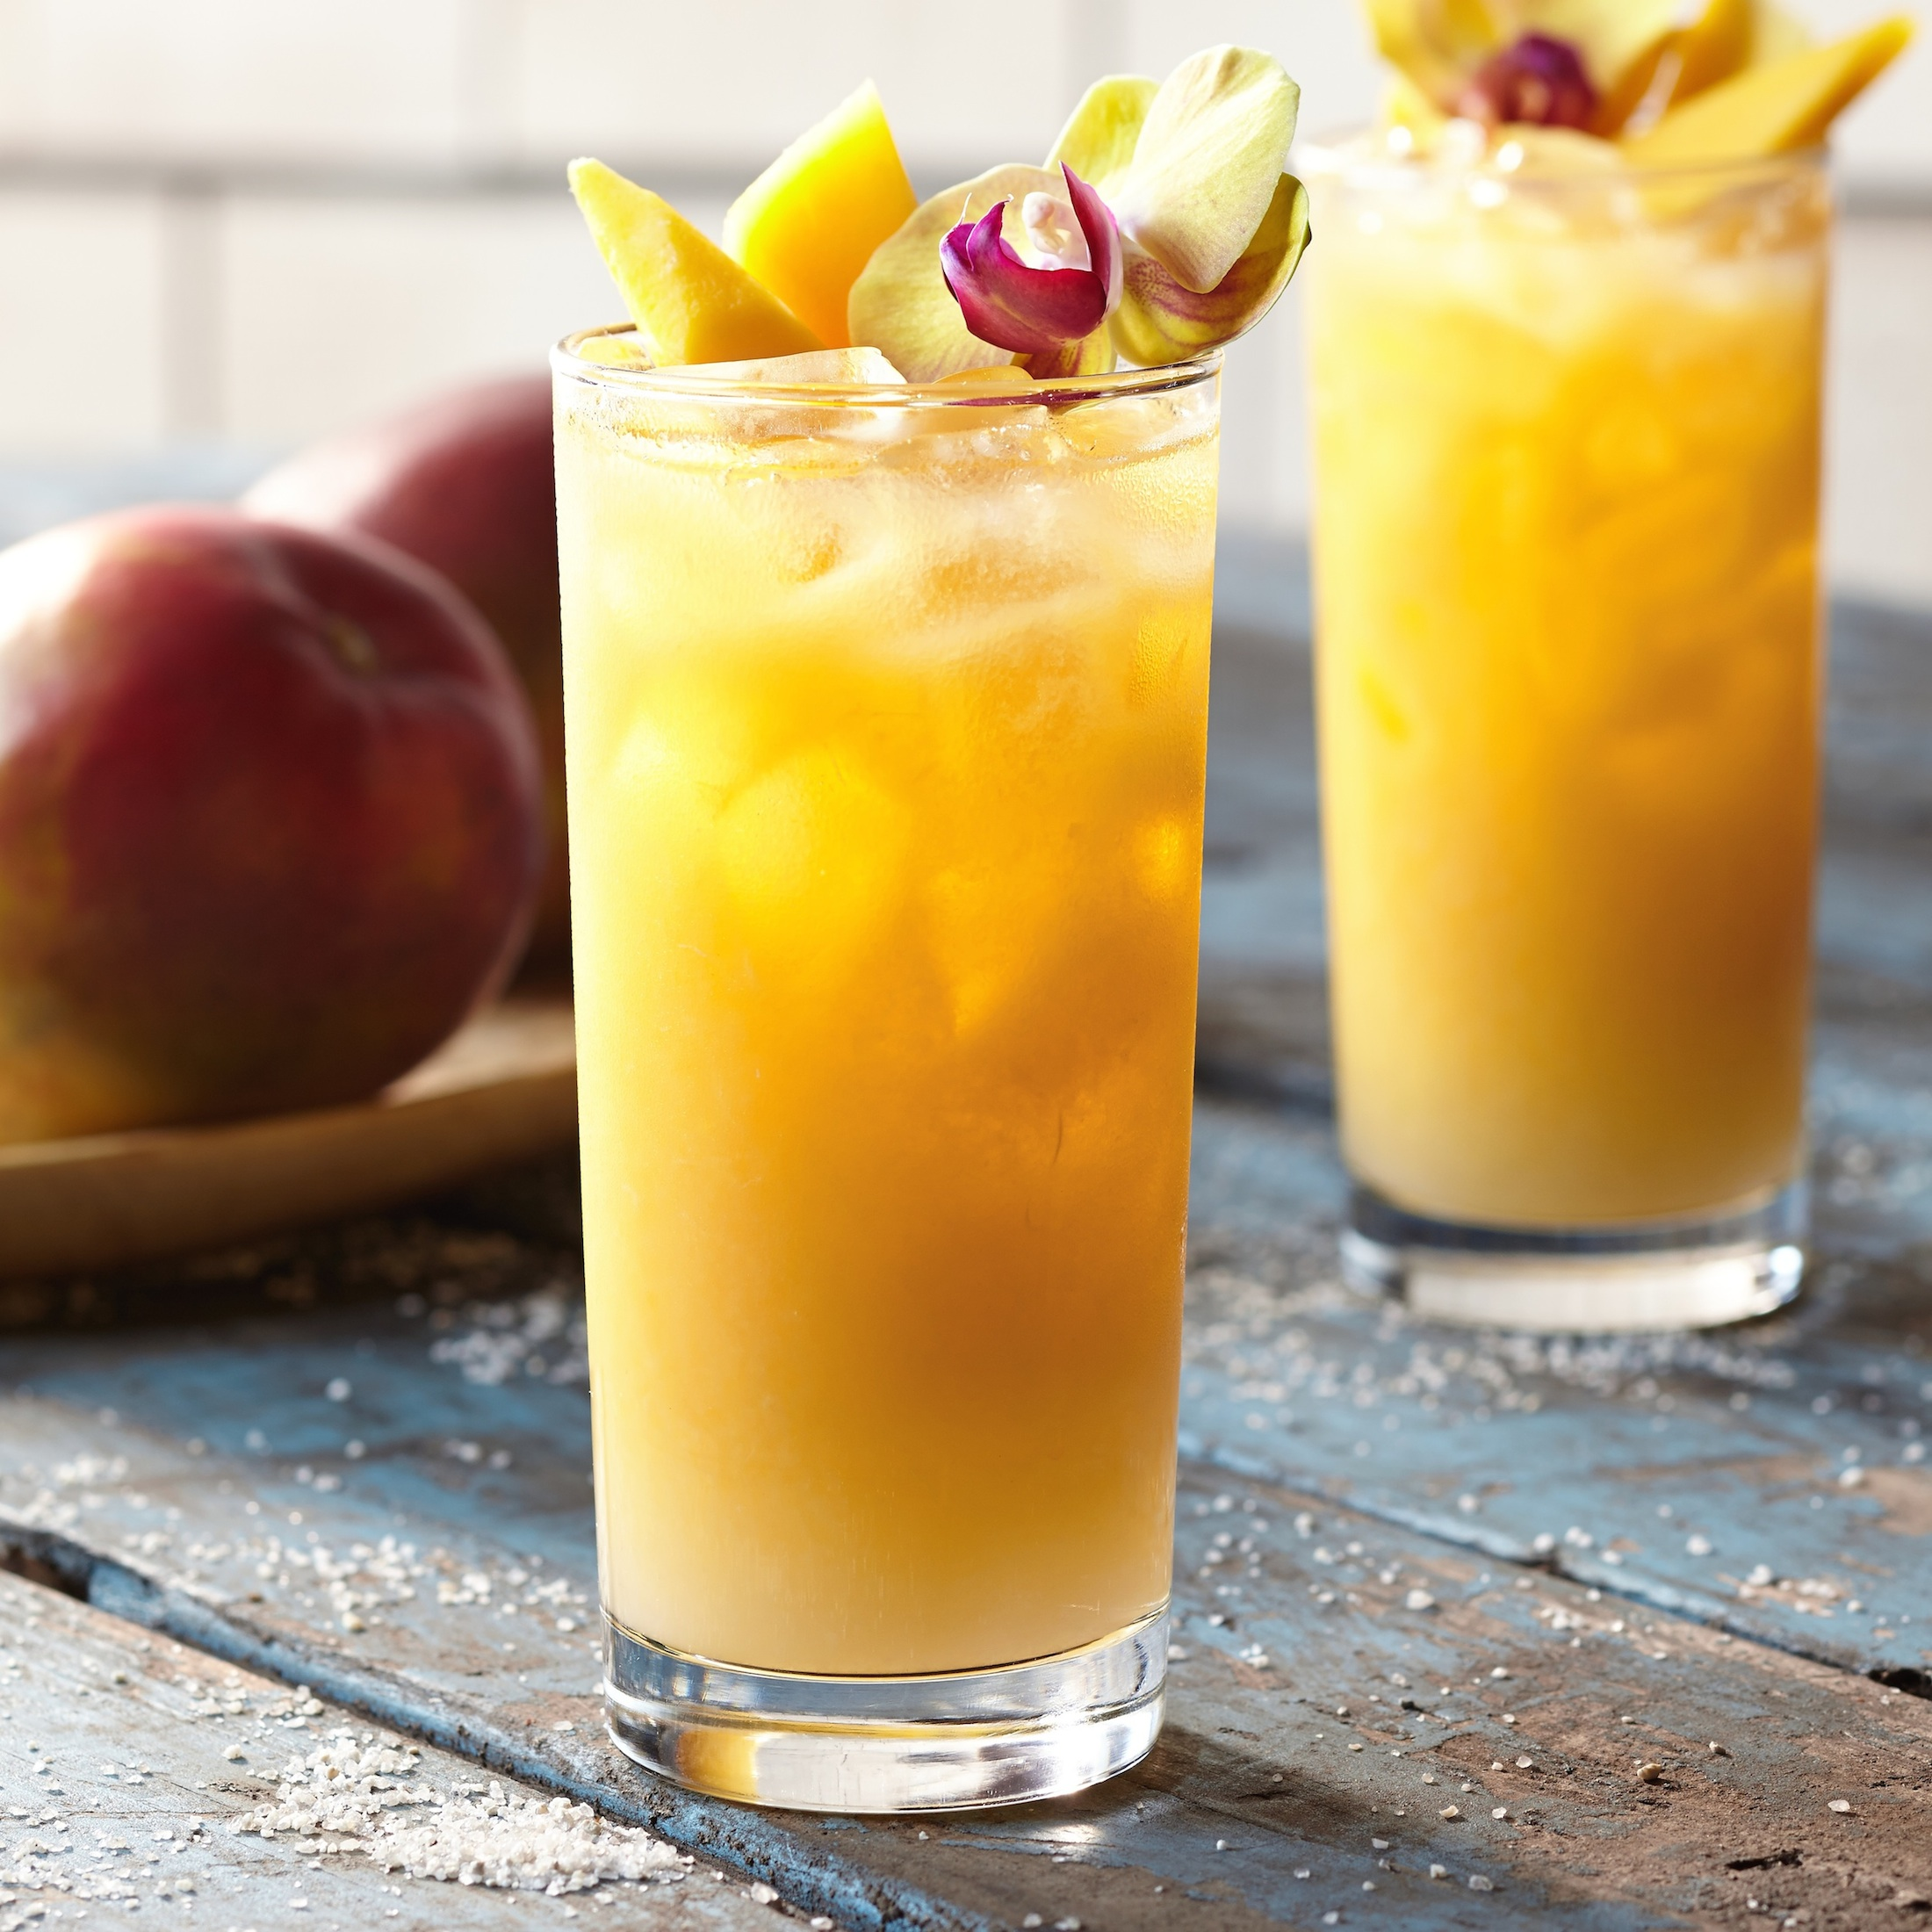 Chillax Cocktail with Tommy Bahama / 5 Relaxation Ideas / hellorigby!